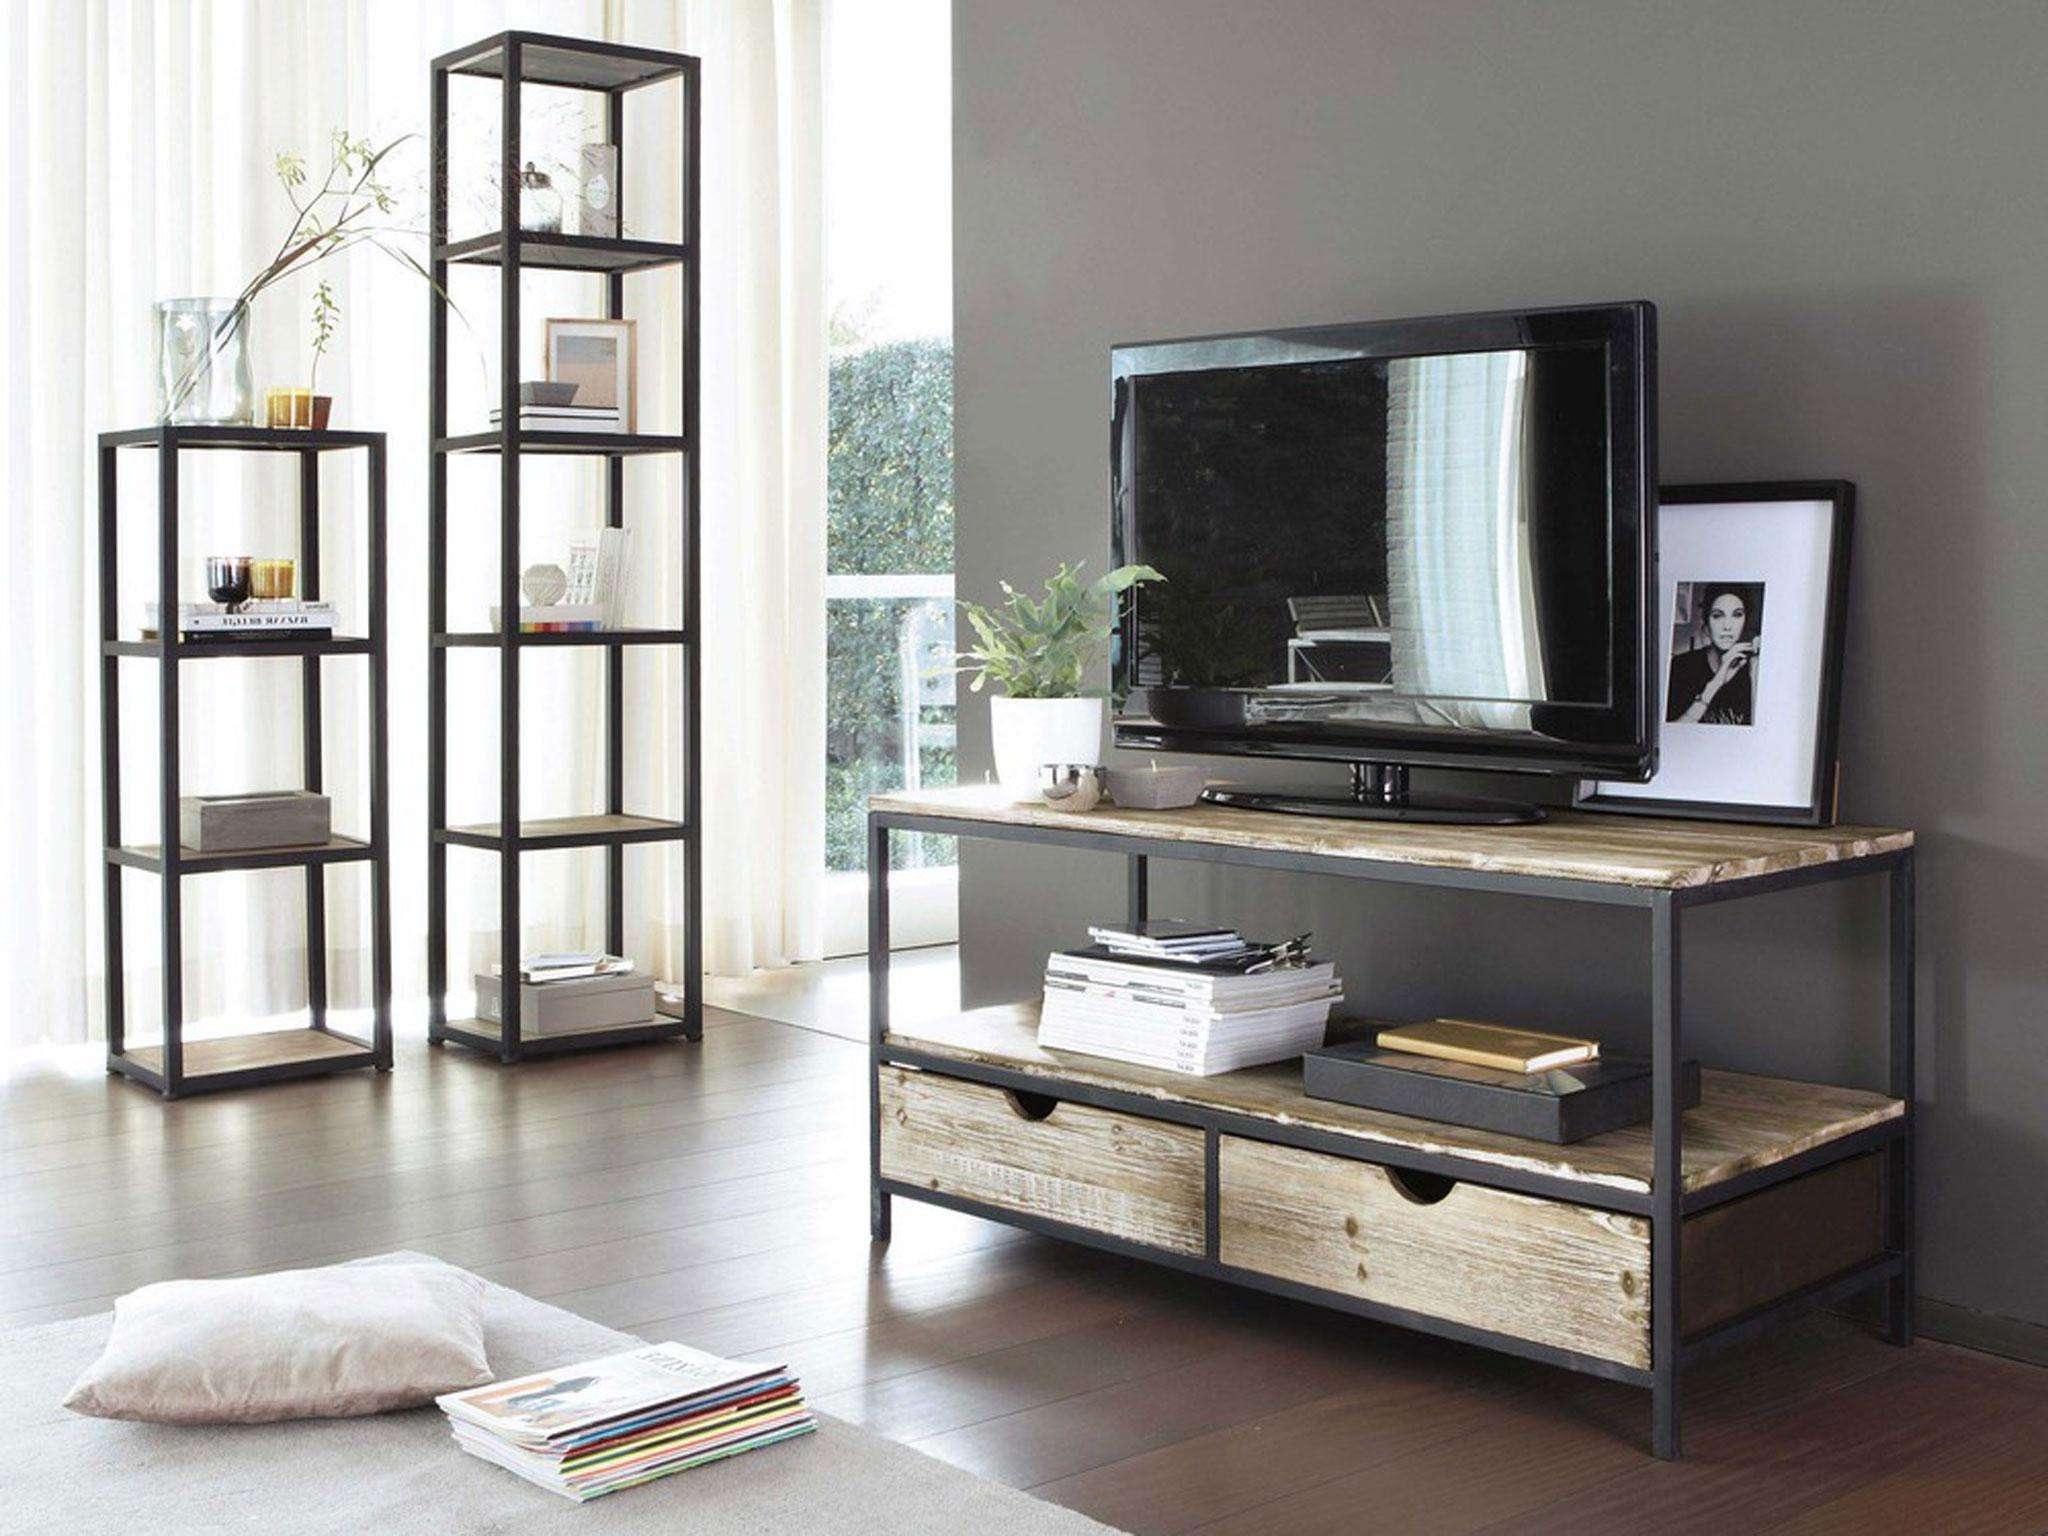 Coffee Tables : Stand Tv Room Furniture Coffee Table And Side Within Tv Cabinets And Coffee Table Sets (View 16 of 20)